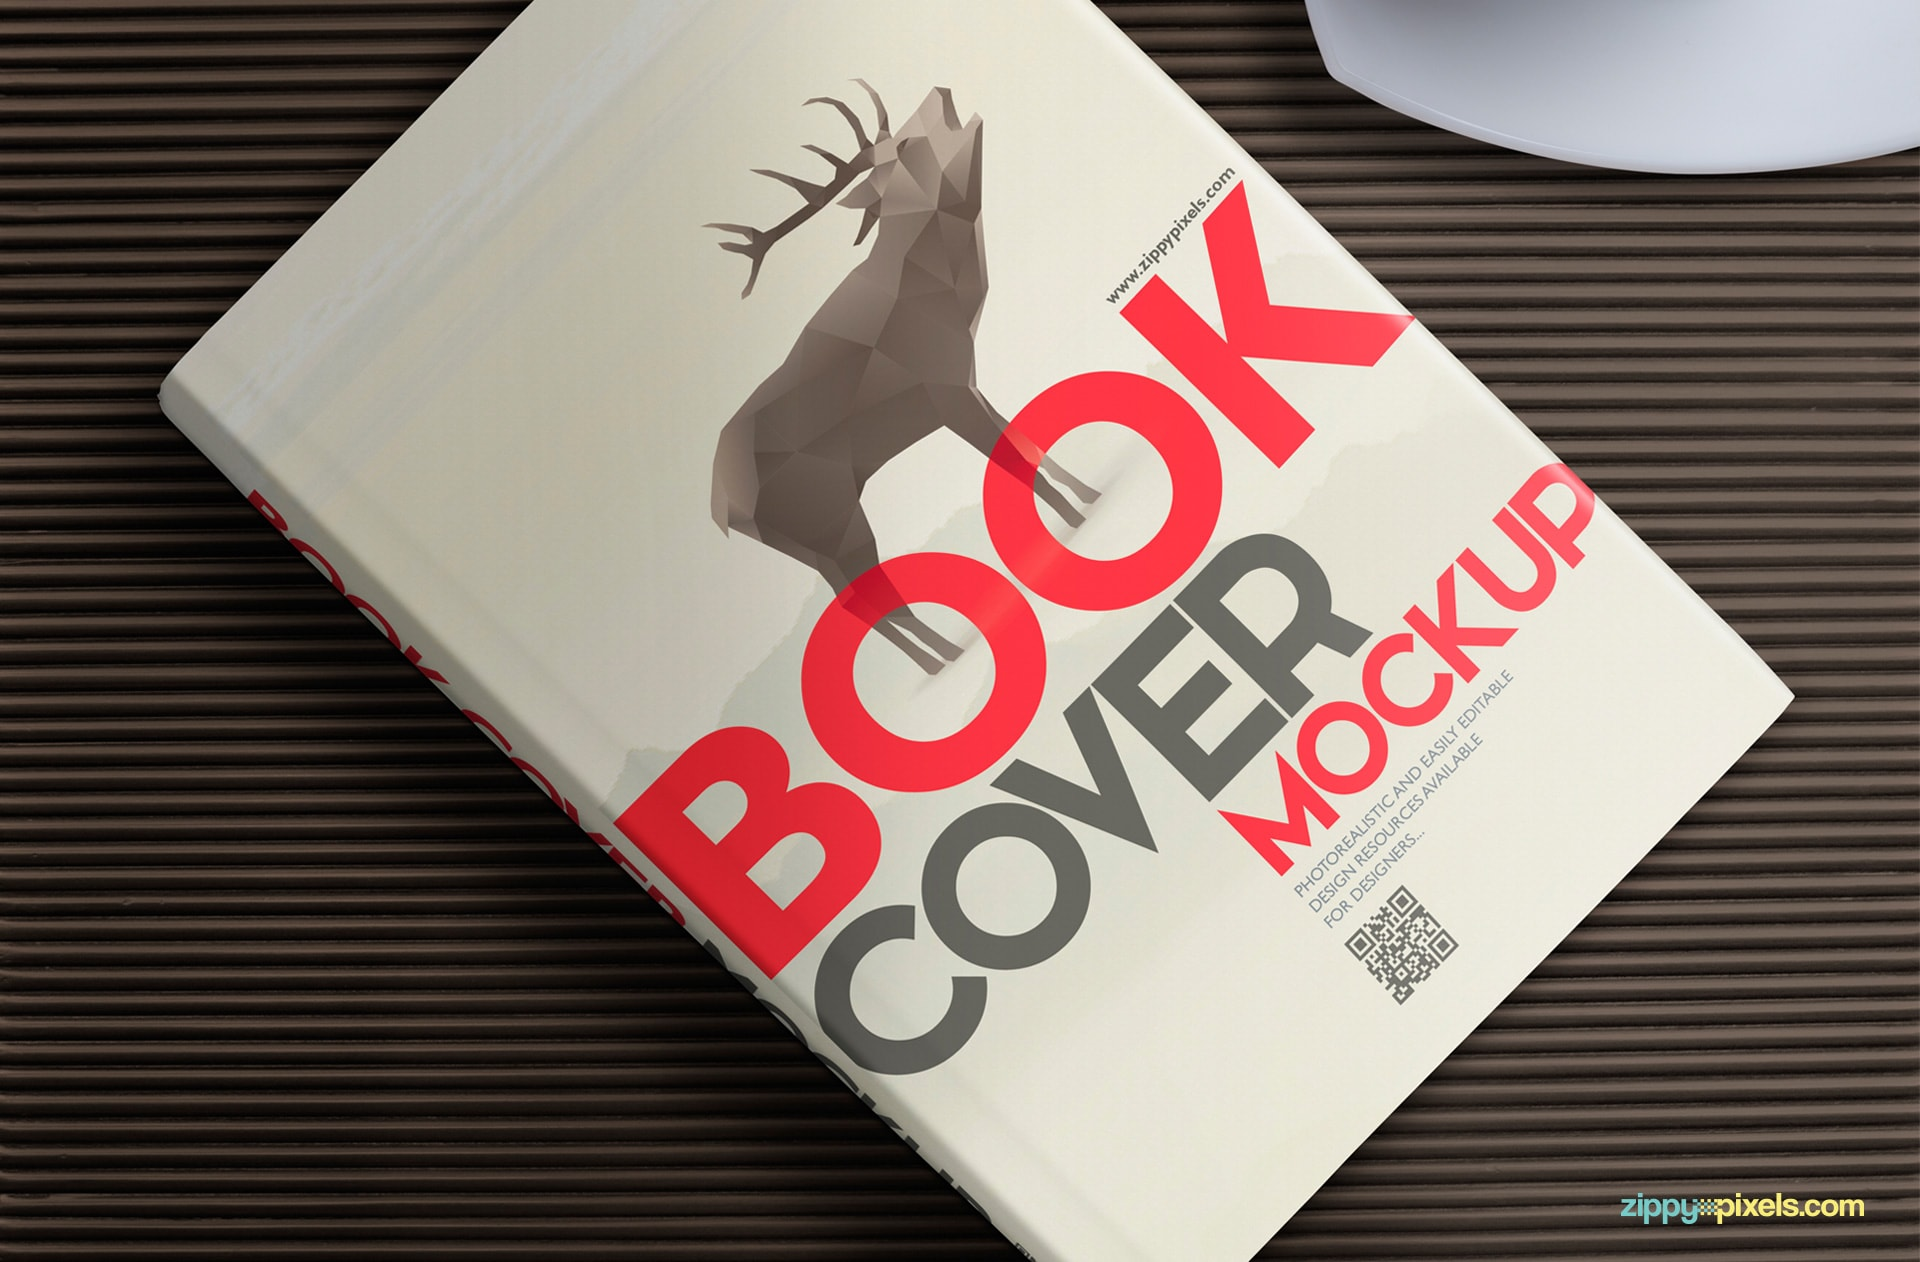 Hardcover Book Cover Template : Free book mockup for hardcover designs zippypixels